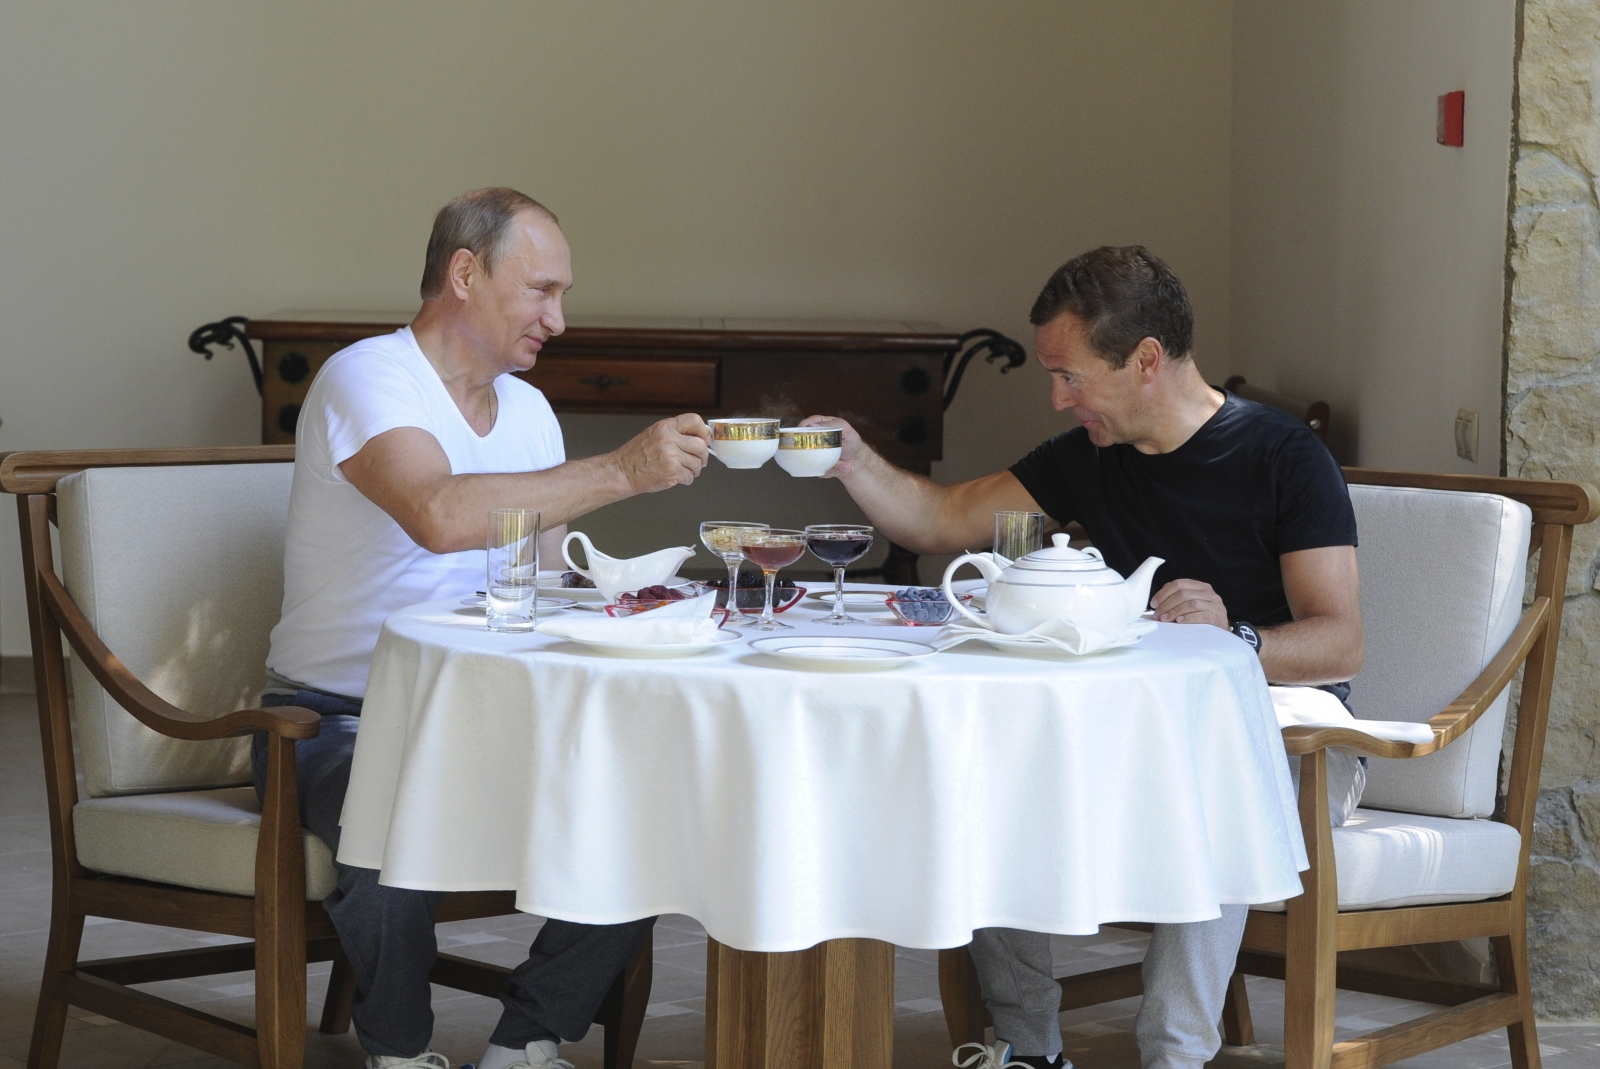 Putin and Medvedev toast their workout